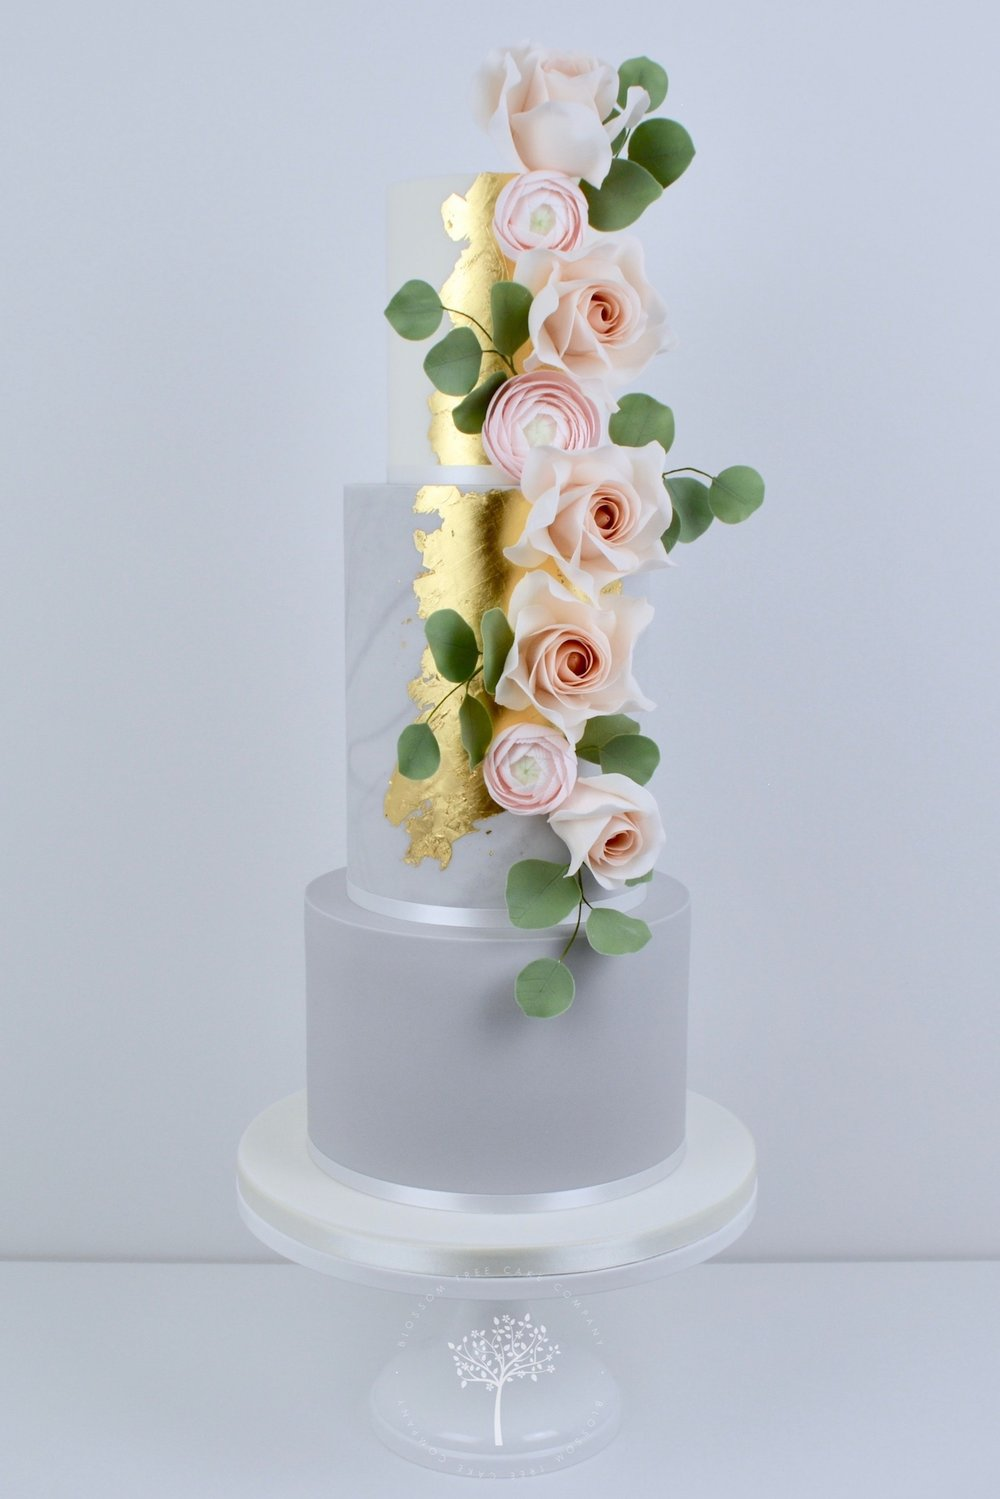 Rose Gold and Ranunculus wedding cake by Blossom Tree Cake Company Harrogate North Yorkshire.jpg